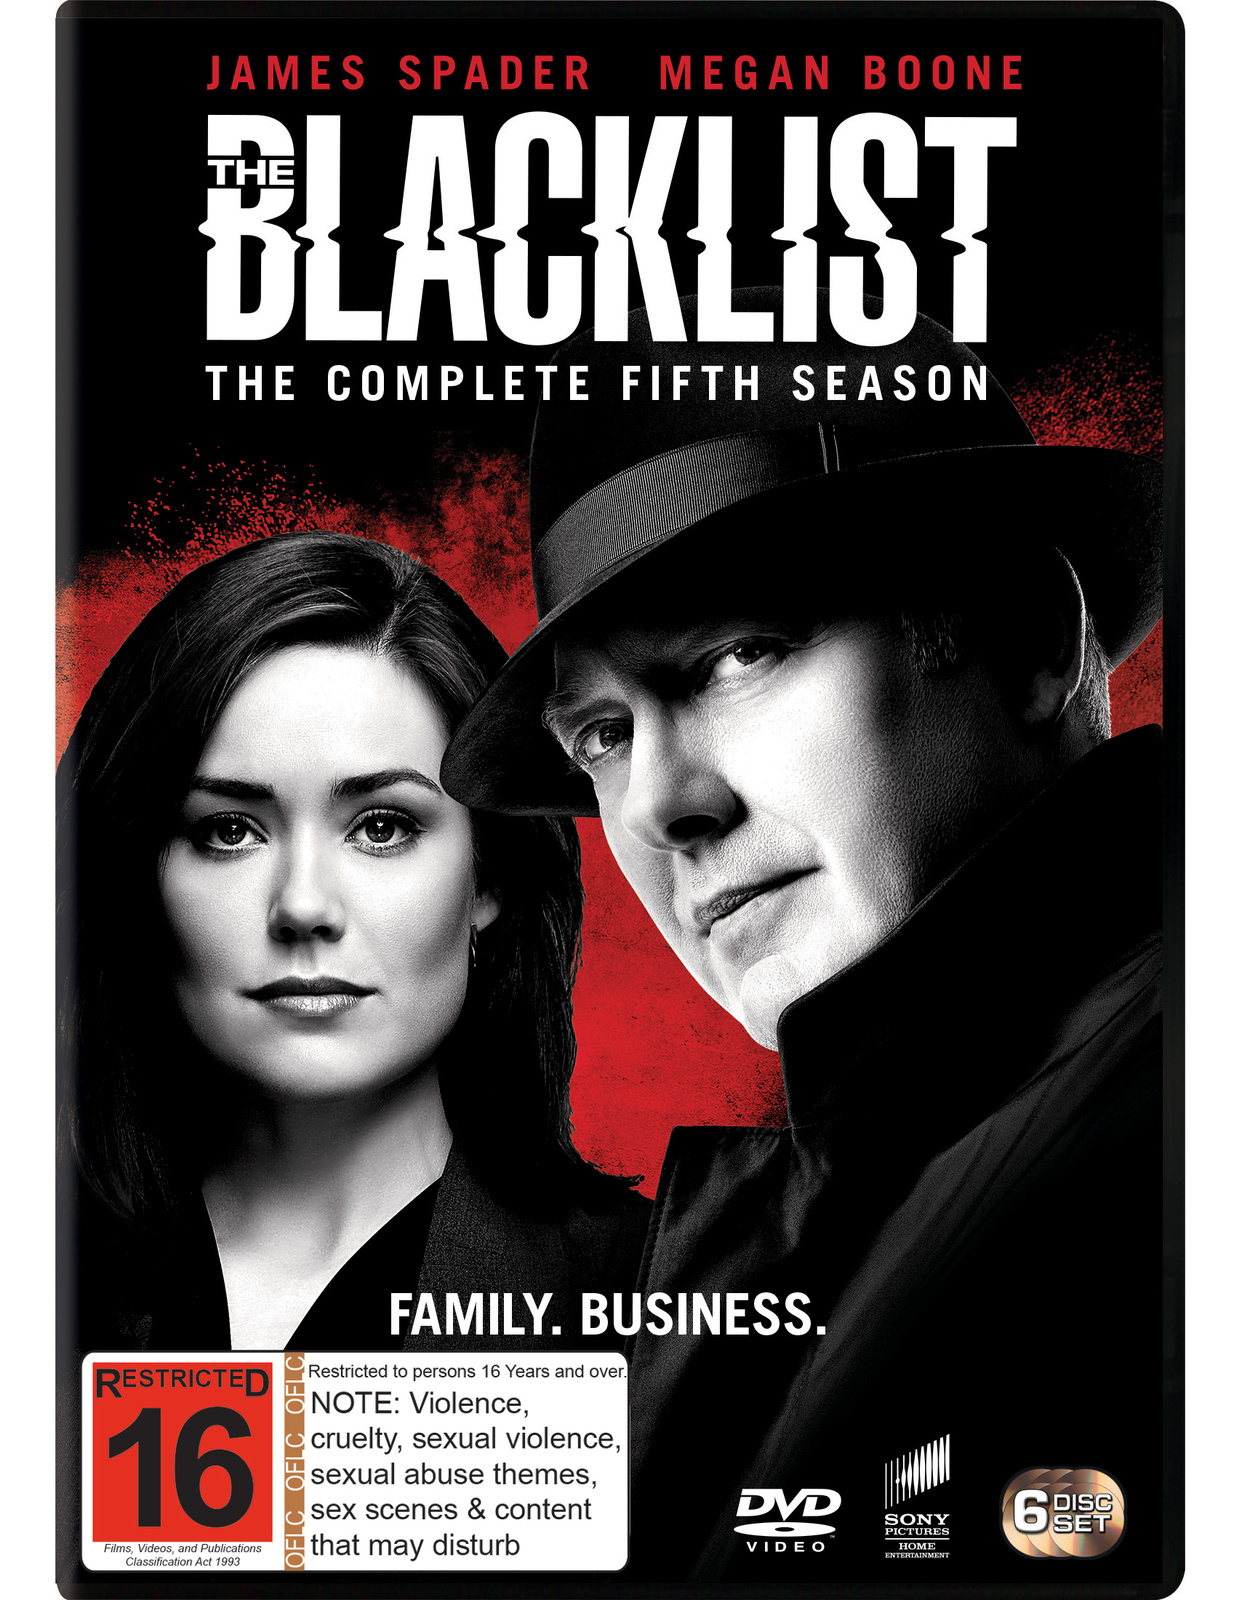 The Blacklist: Season 5 on DVD image